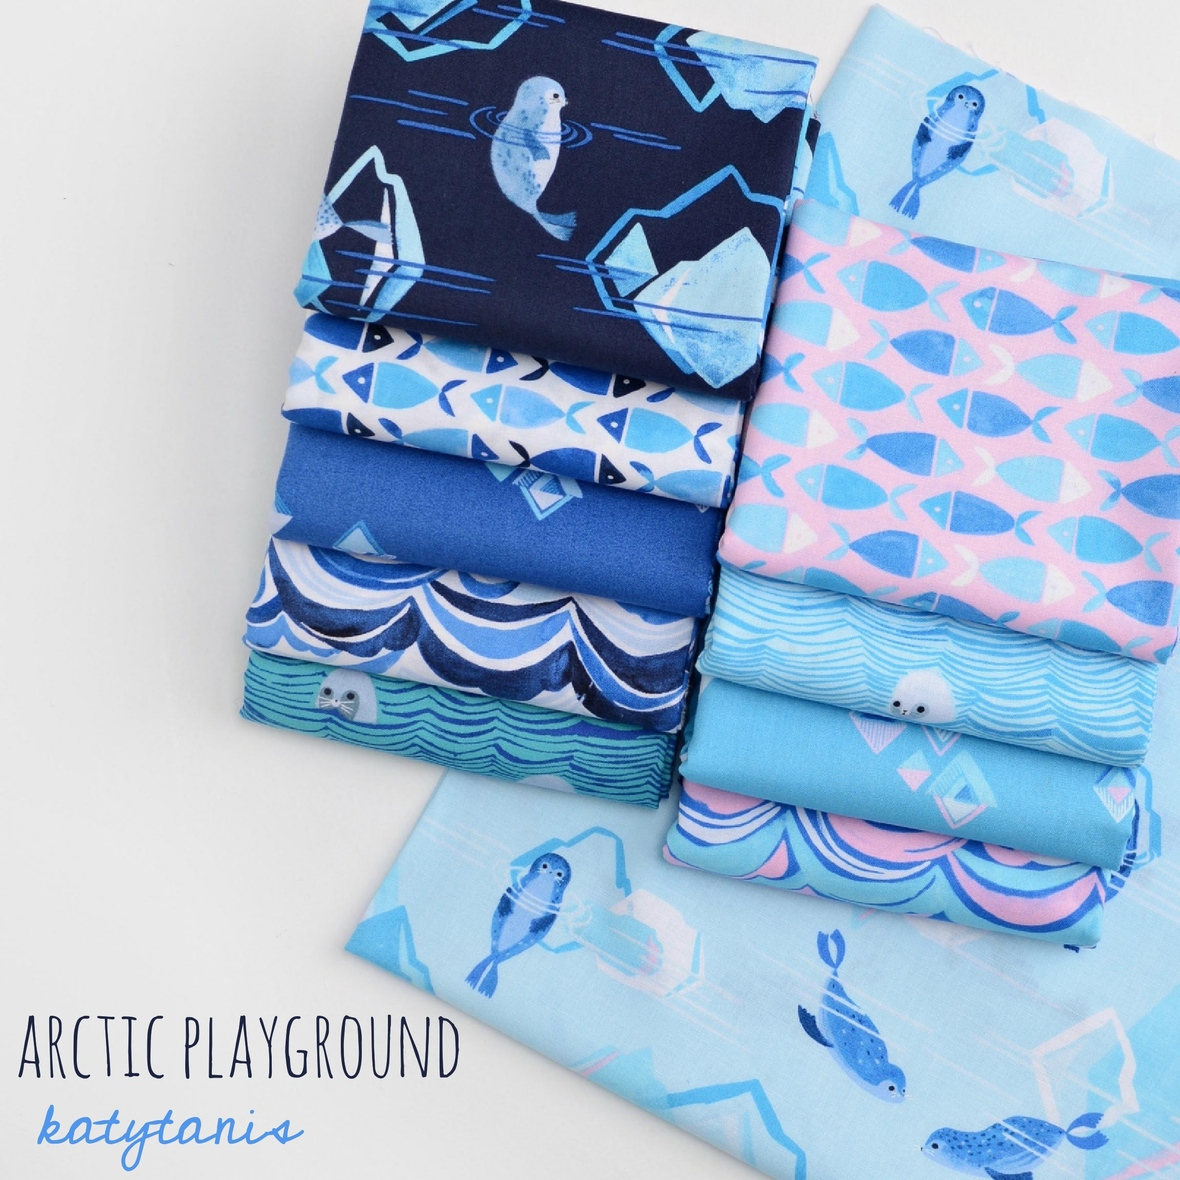 Arctic Playground Fabric Poster Fotor